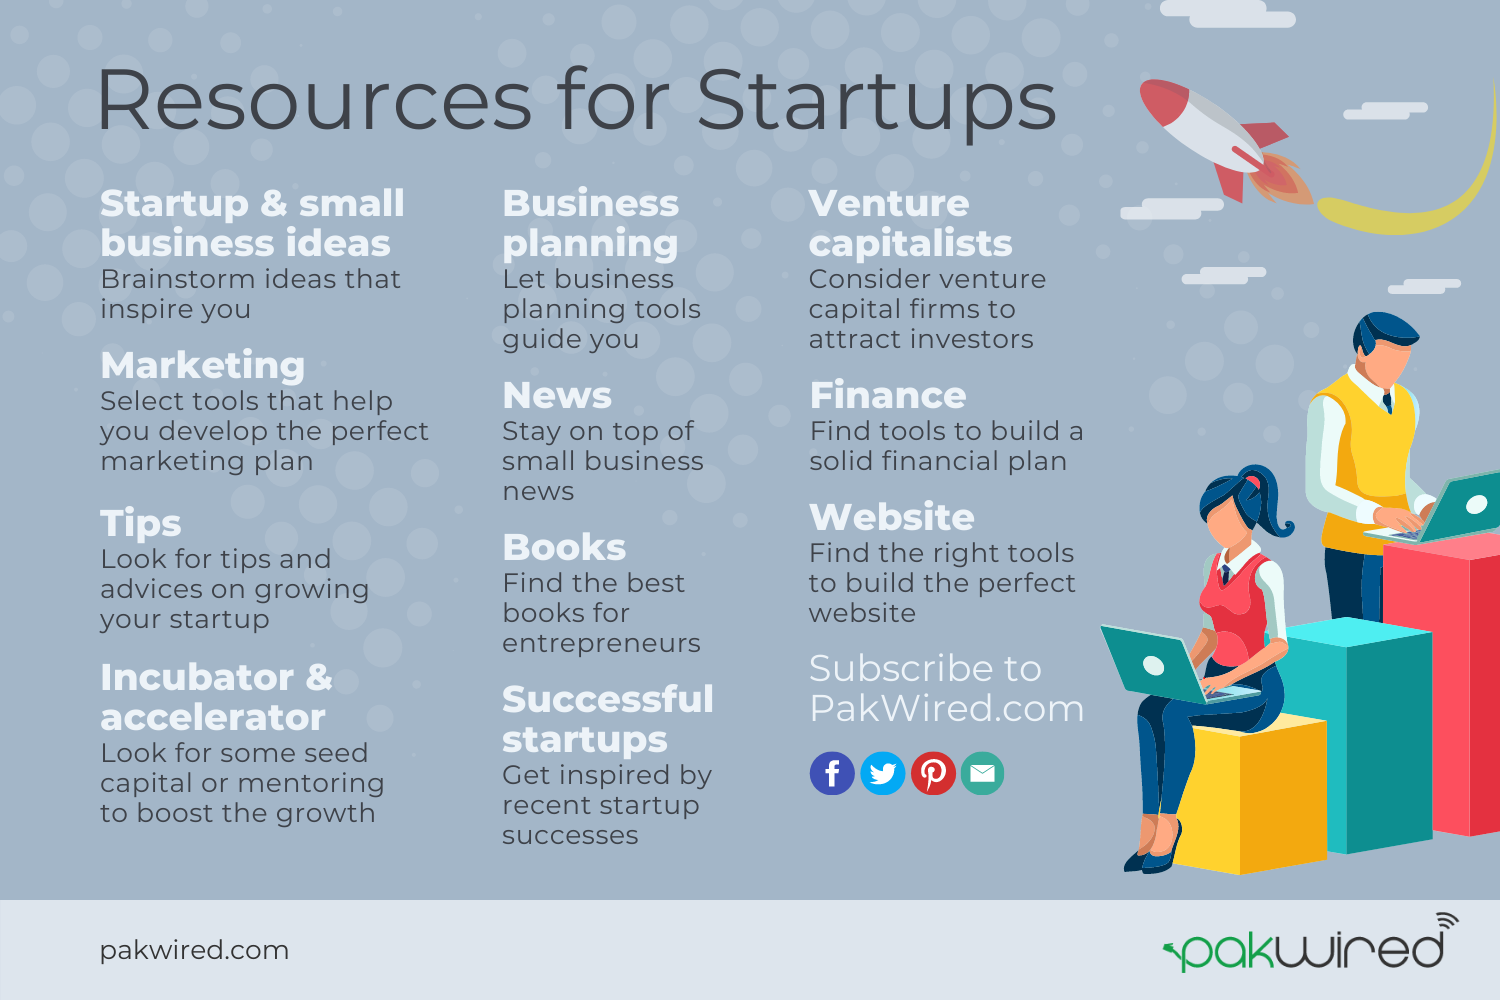 Resources for Startups